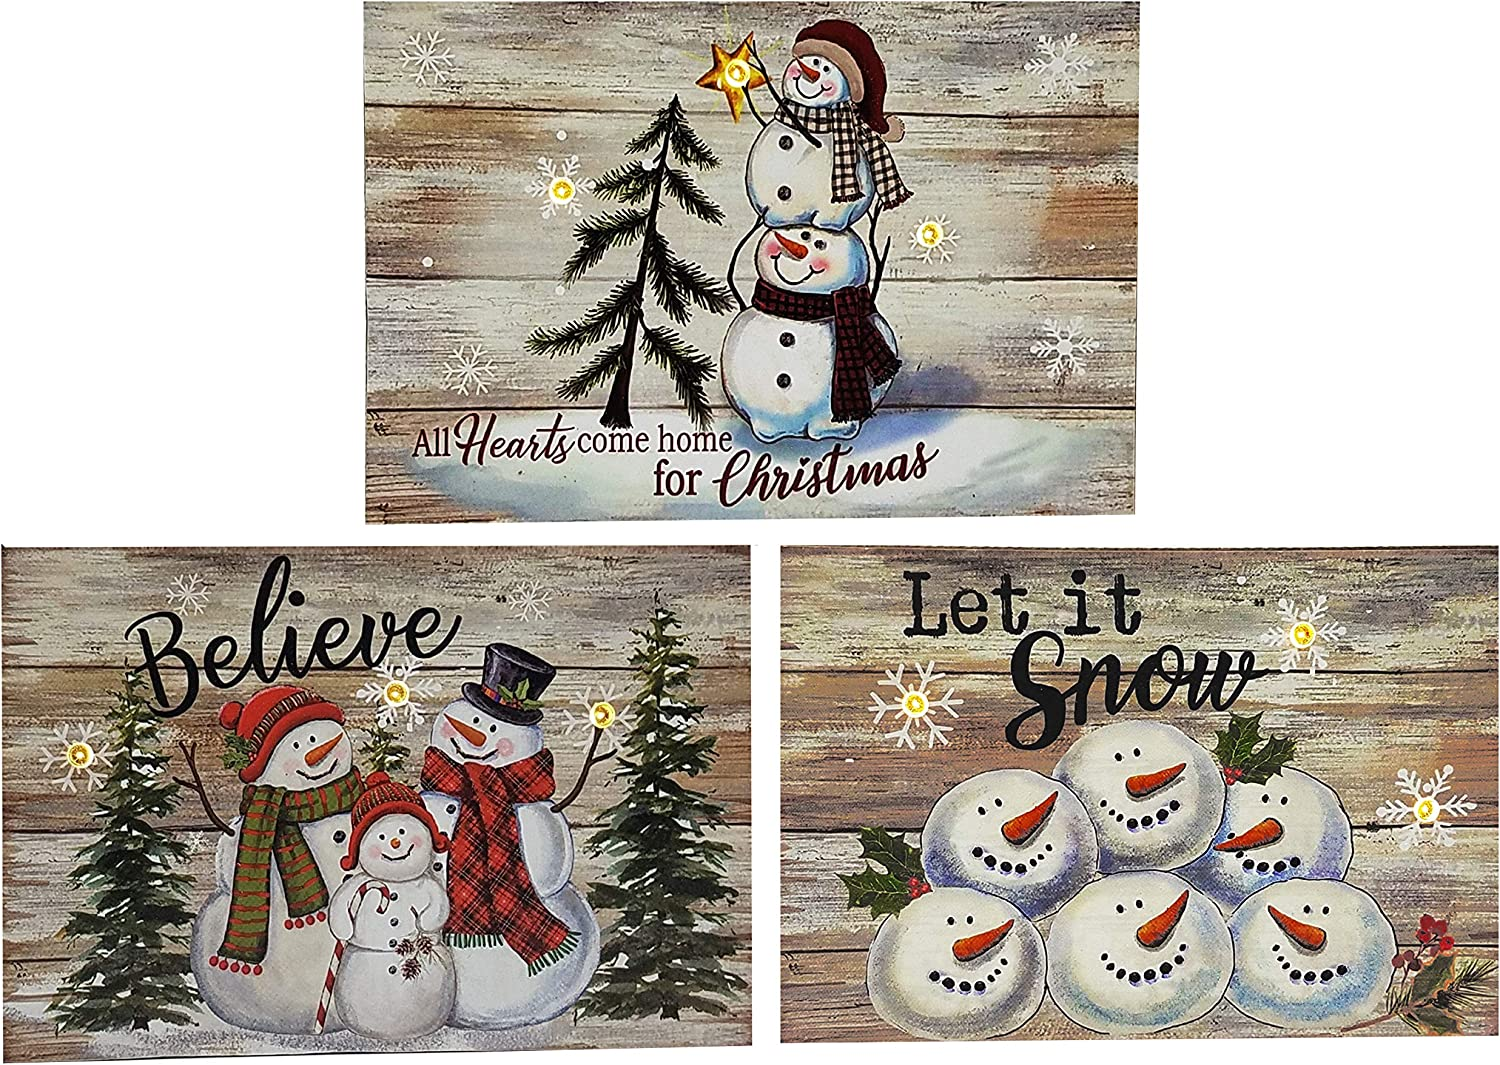 OSW LED Lighted Snowflakes and Snowman Wooden Block Plaques with Auto Timer, Set of 3 Christmas Decor Wall Signs or Tabletop Decorations Battery-Operated Light-Up